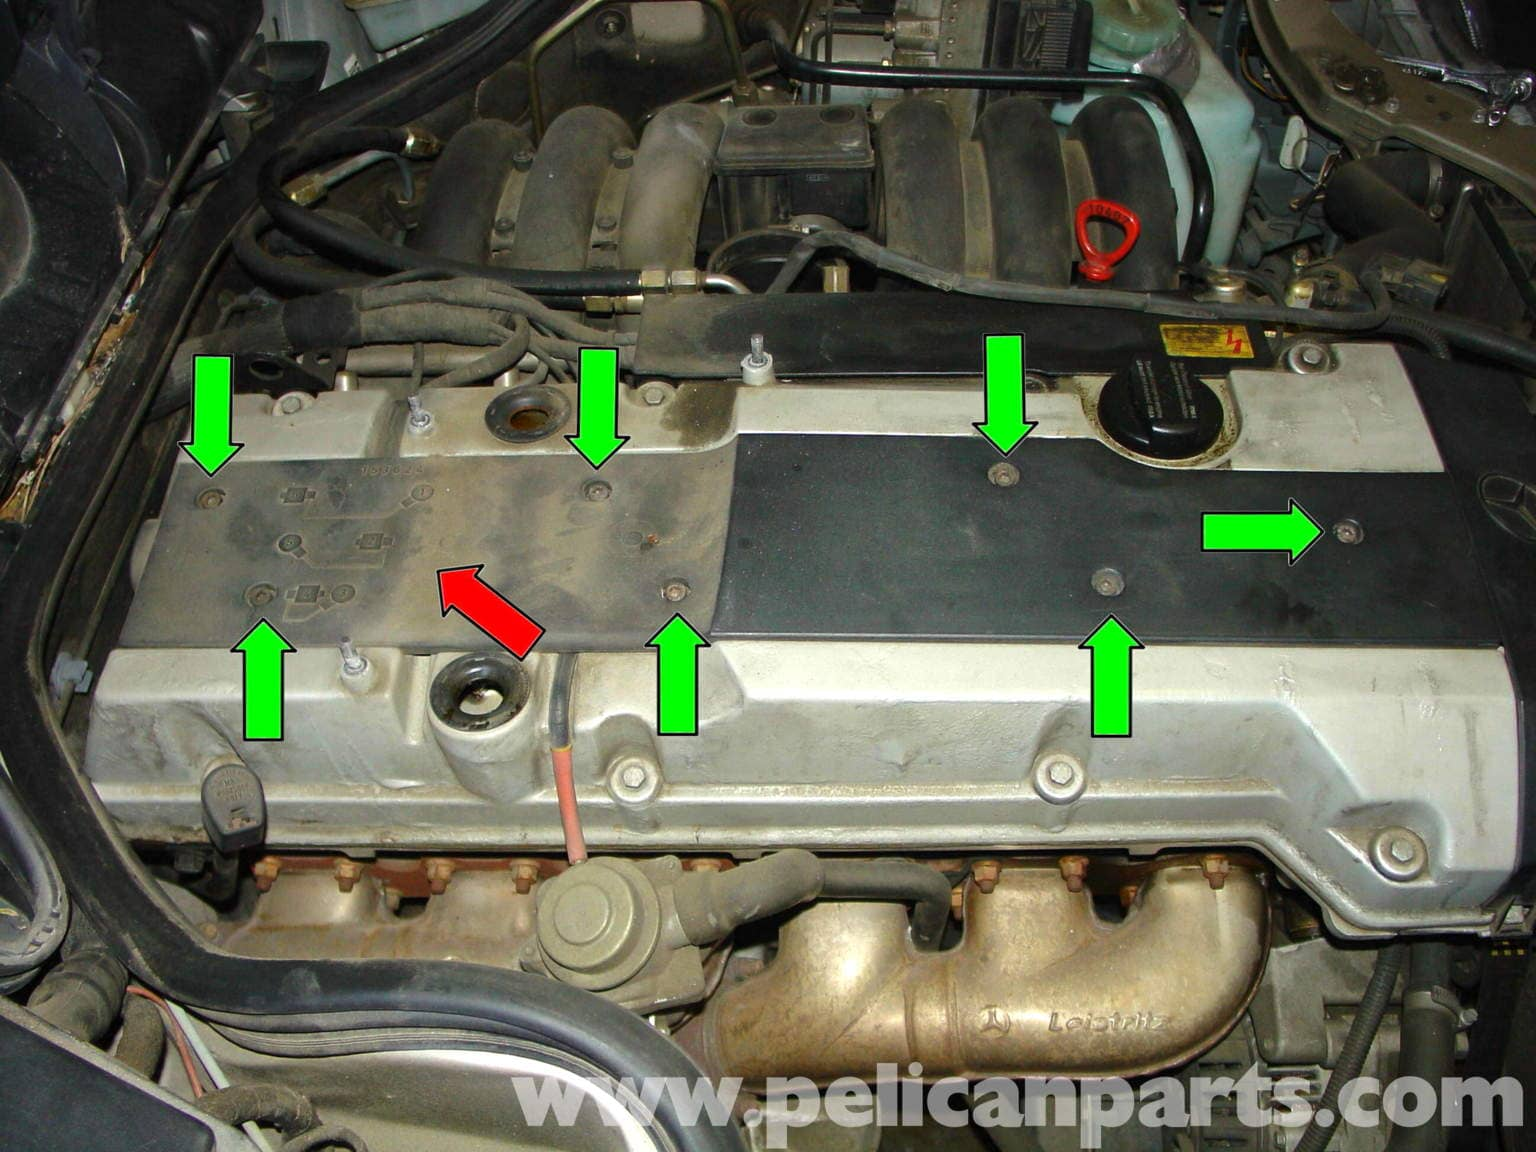 D  pressor Relay D Turbo  pressor Clutch Control besides Pic besides Maxresdefault furthermore Generator Control Panel For Industrial Applications Diagram as well Maxresdefault. on mercedes ignition switch wiring diagram